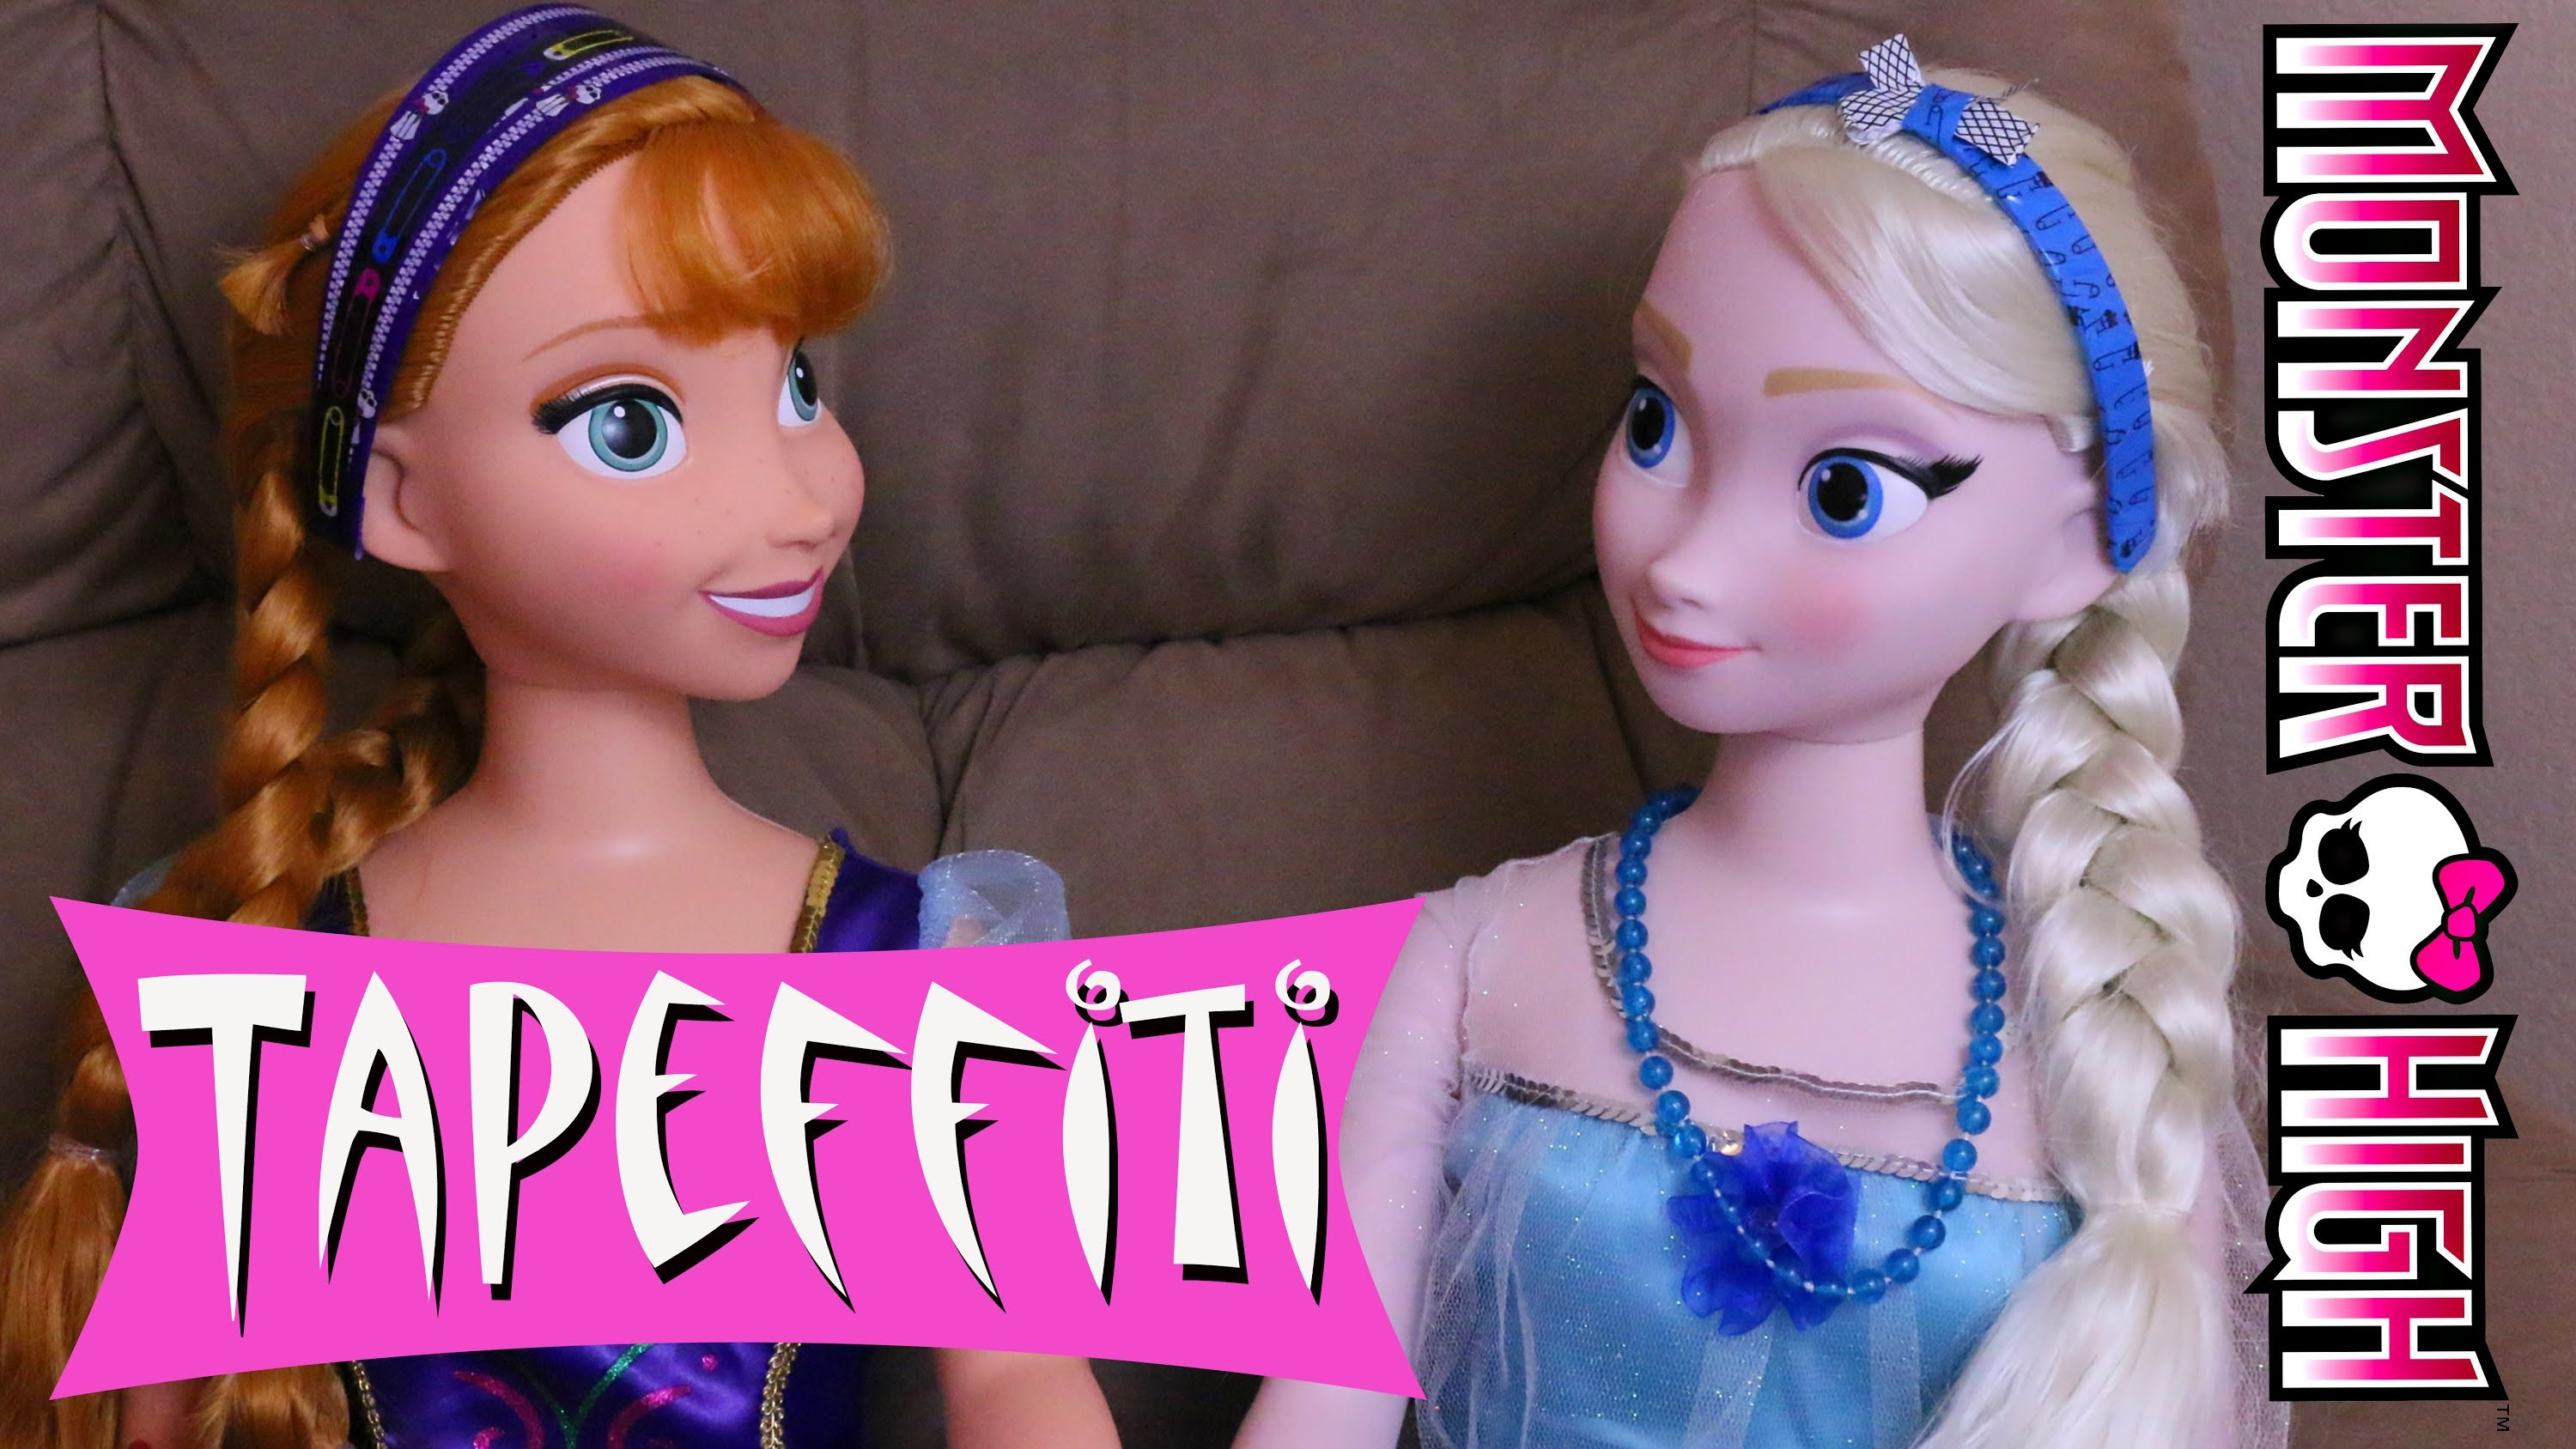 Disney Frozen My Size Elsa & Anna Dolls Makeover Monster High Tapeffiti Headbands DisneyCarToys